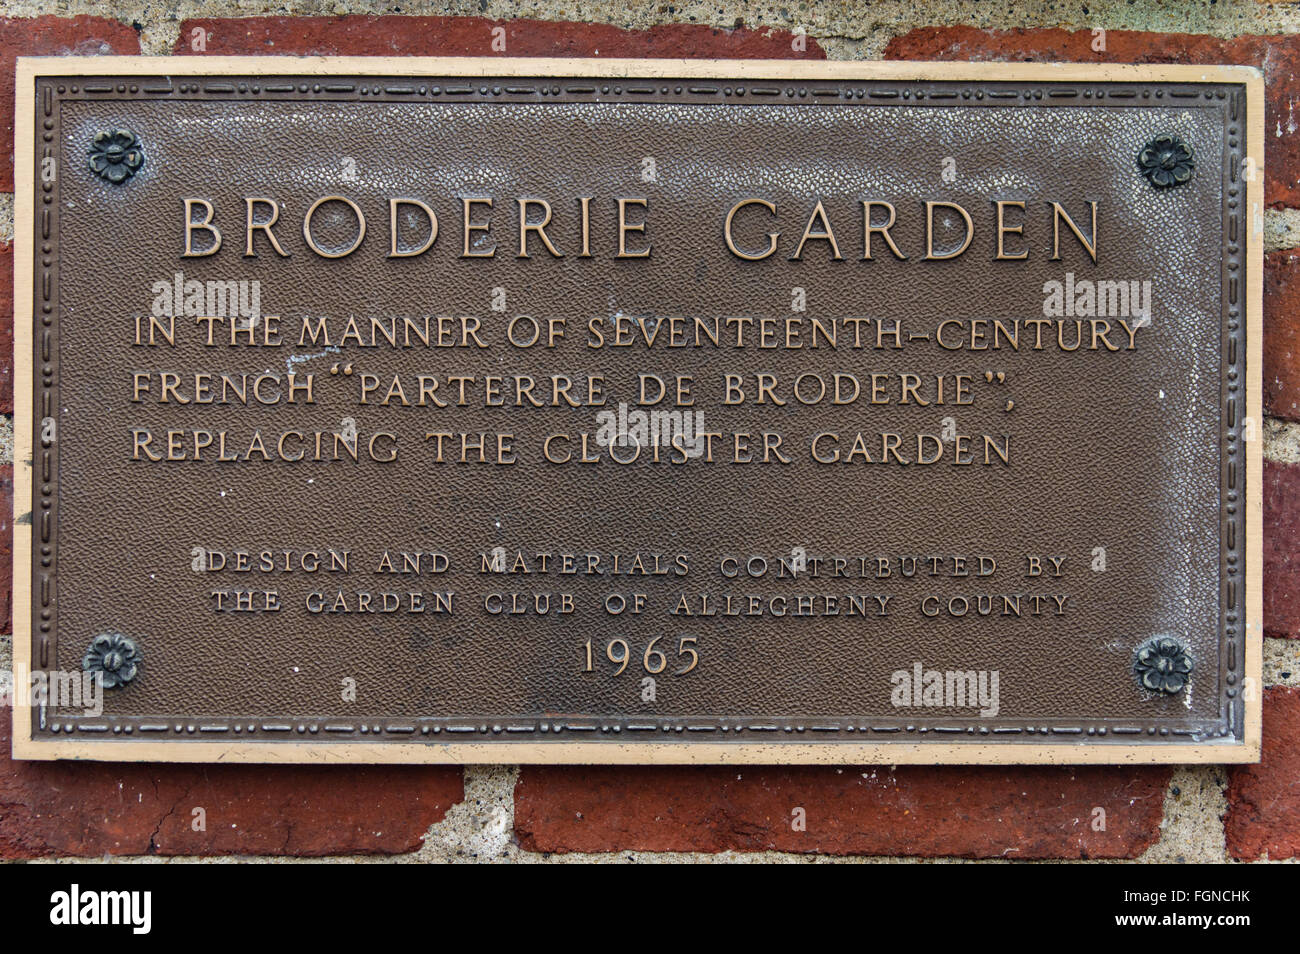 Bronze plaque for the Broderie Garden at Phipps Conservatory Stock on key club designs, snow ski club designs, photography designs, garden design dallas texas, running club designs, french club designs, ceramics designs, lions designs, health club designs, fashion club designs, car club designs, science club designs, book club designs, boat club designs, art designs, drama designs, events designs, 4-h club designs, nhs designs, fitness club designs,